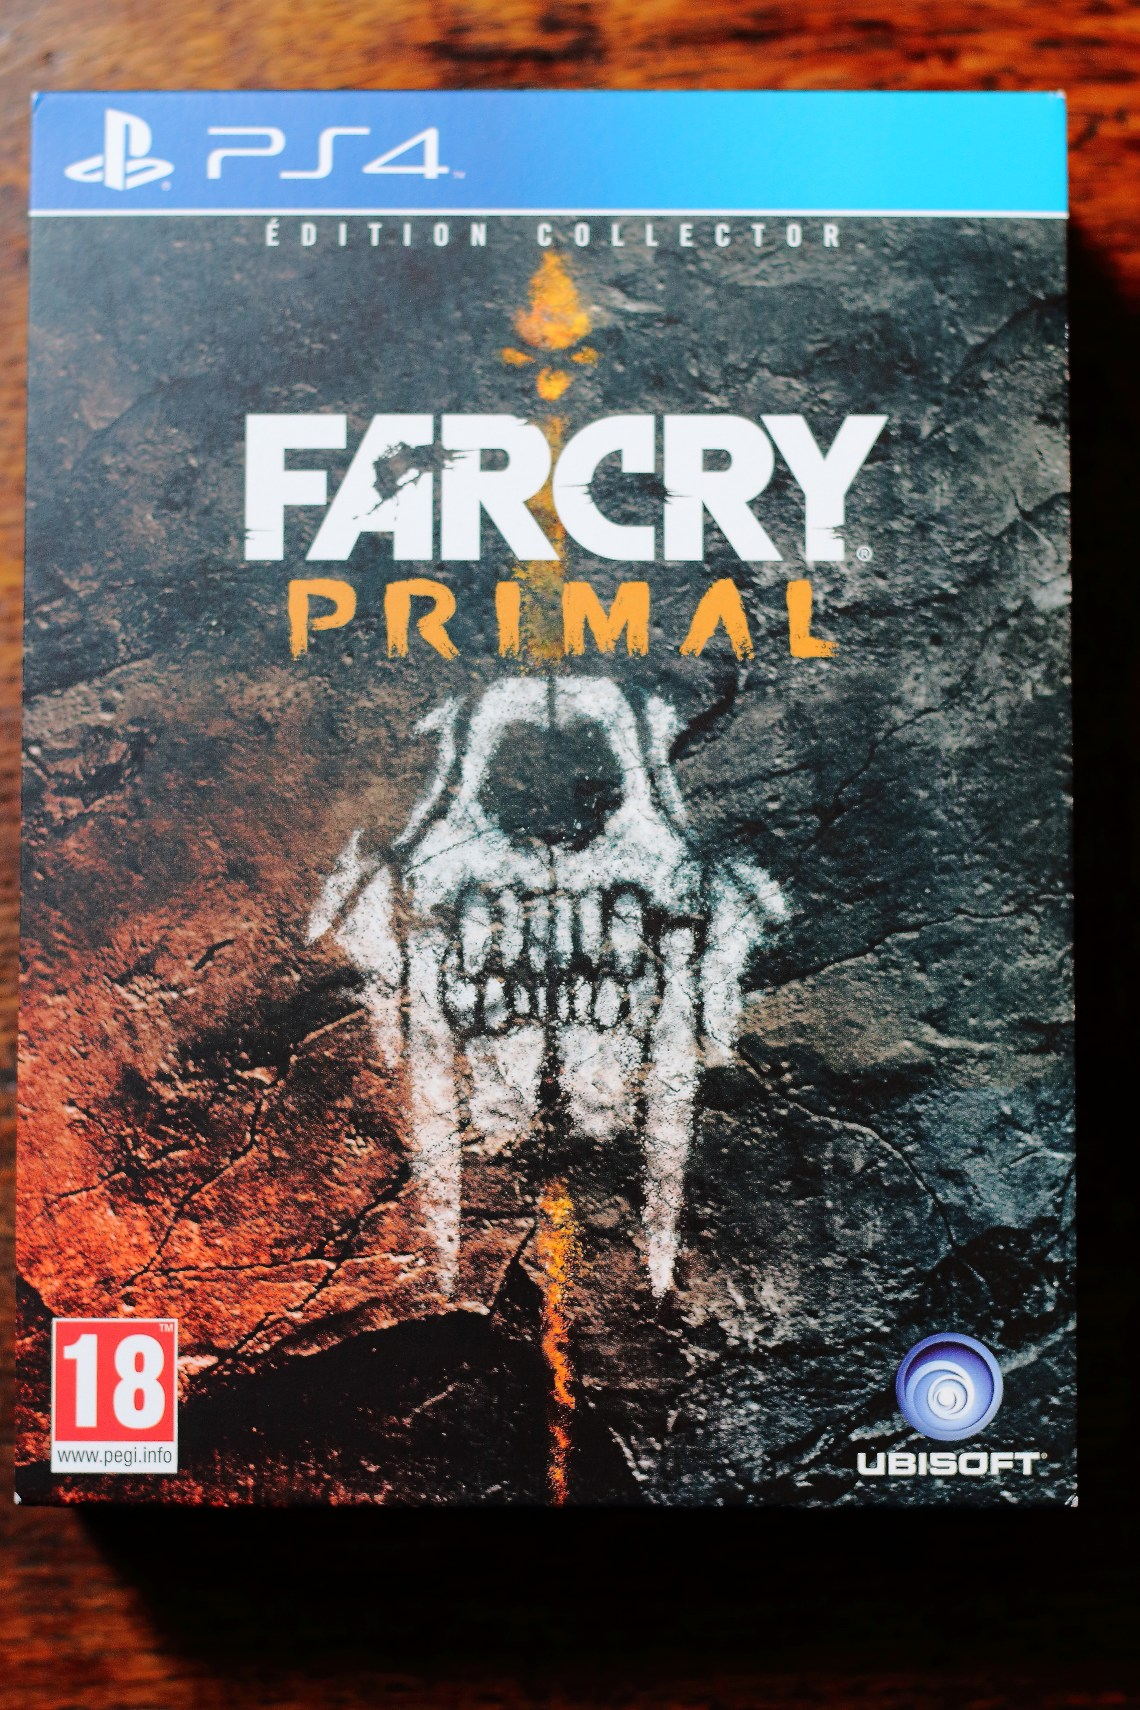 Unboxing édition collector Far Cry Primal